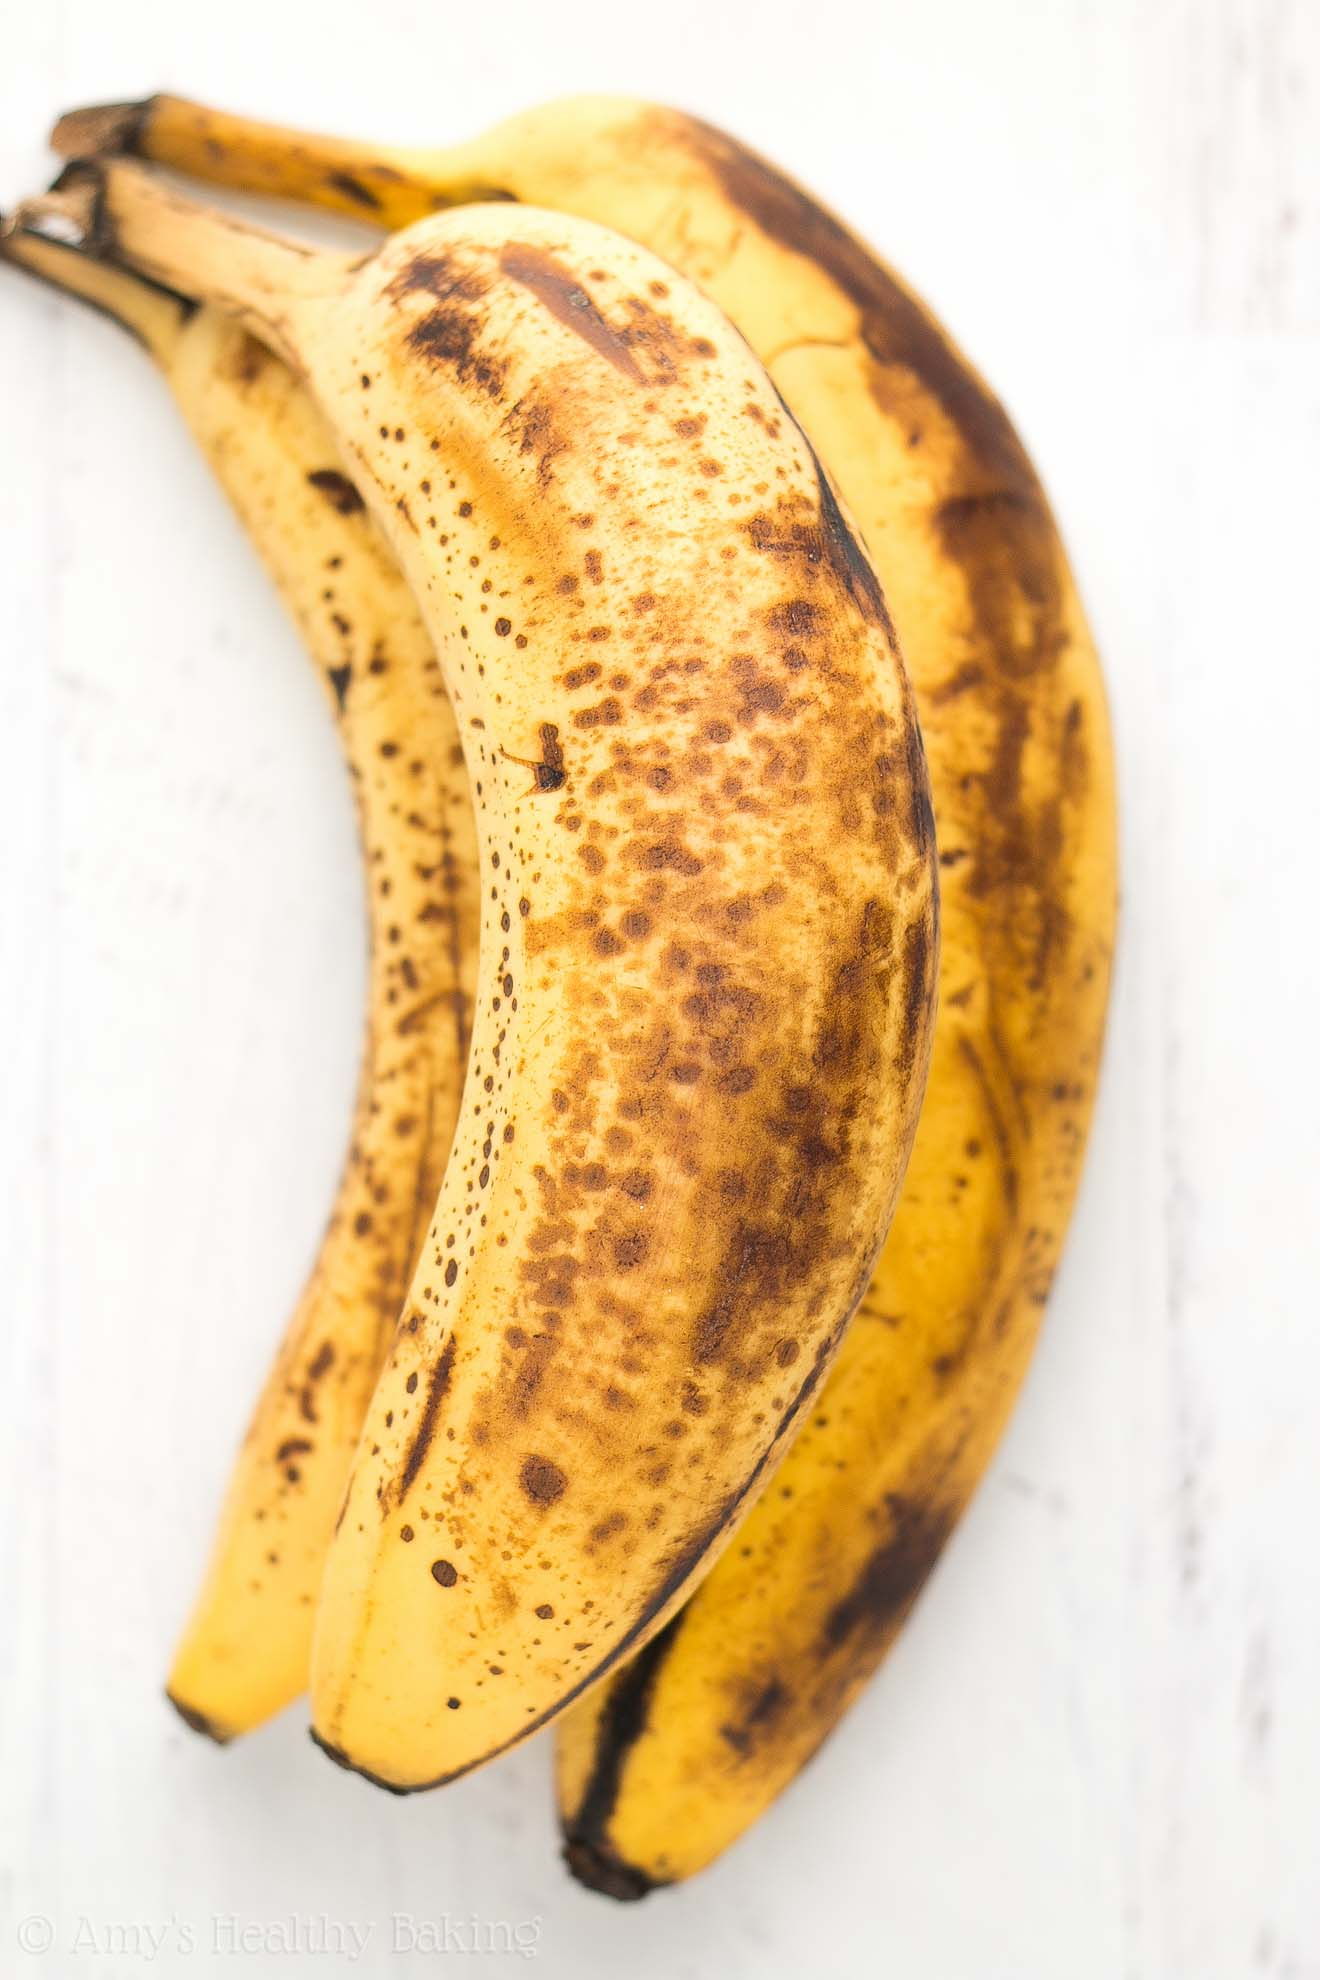 Very ripe and spotty bananas that are perfect for baking